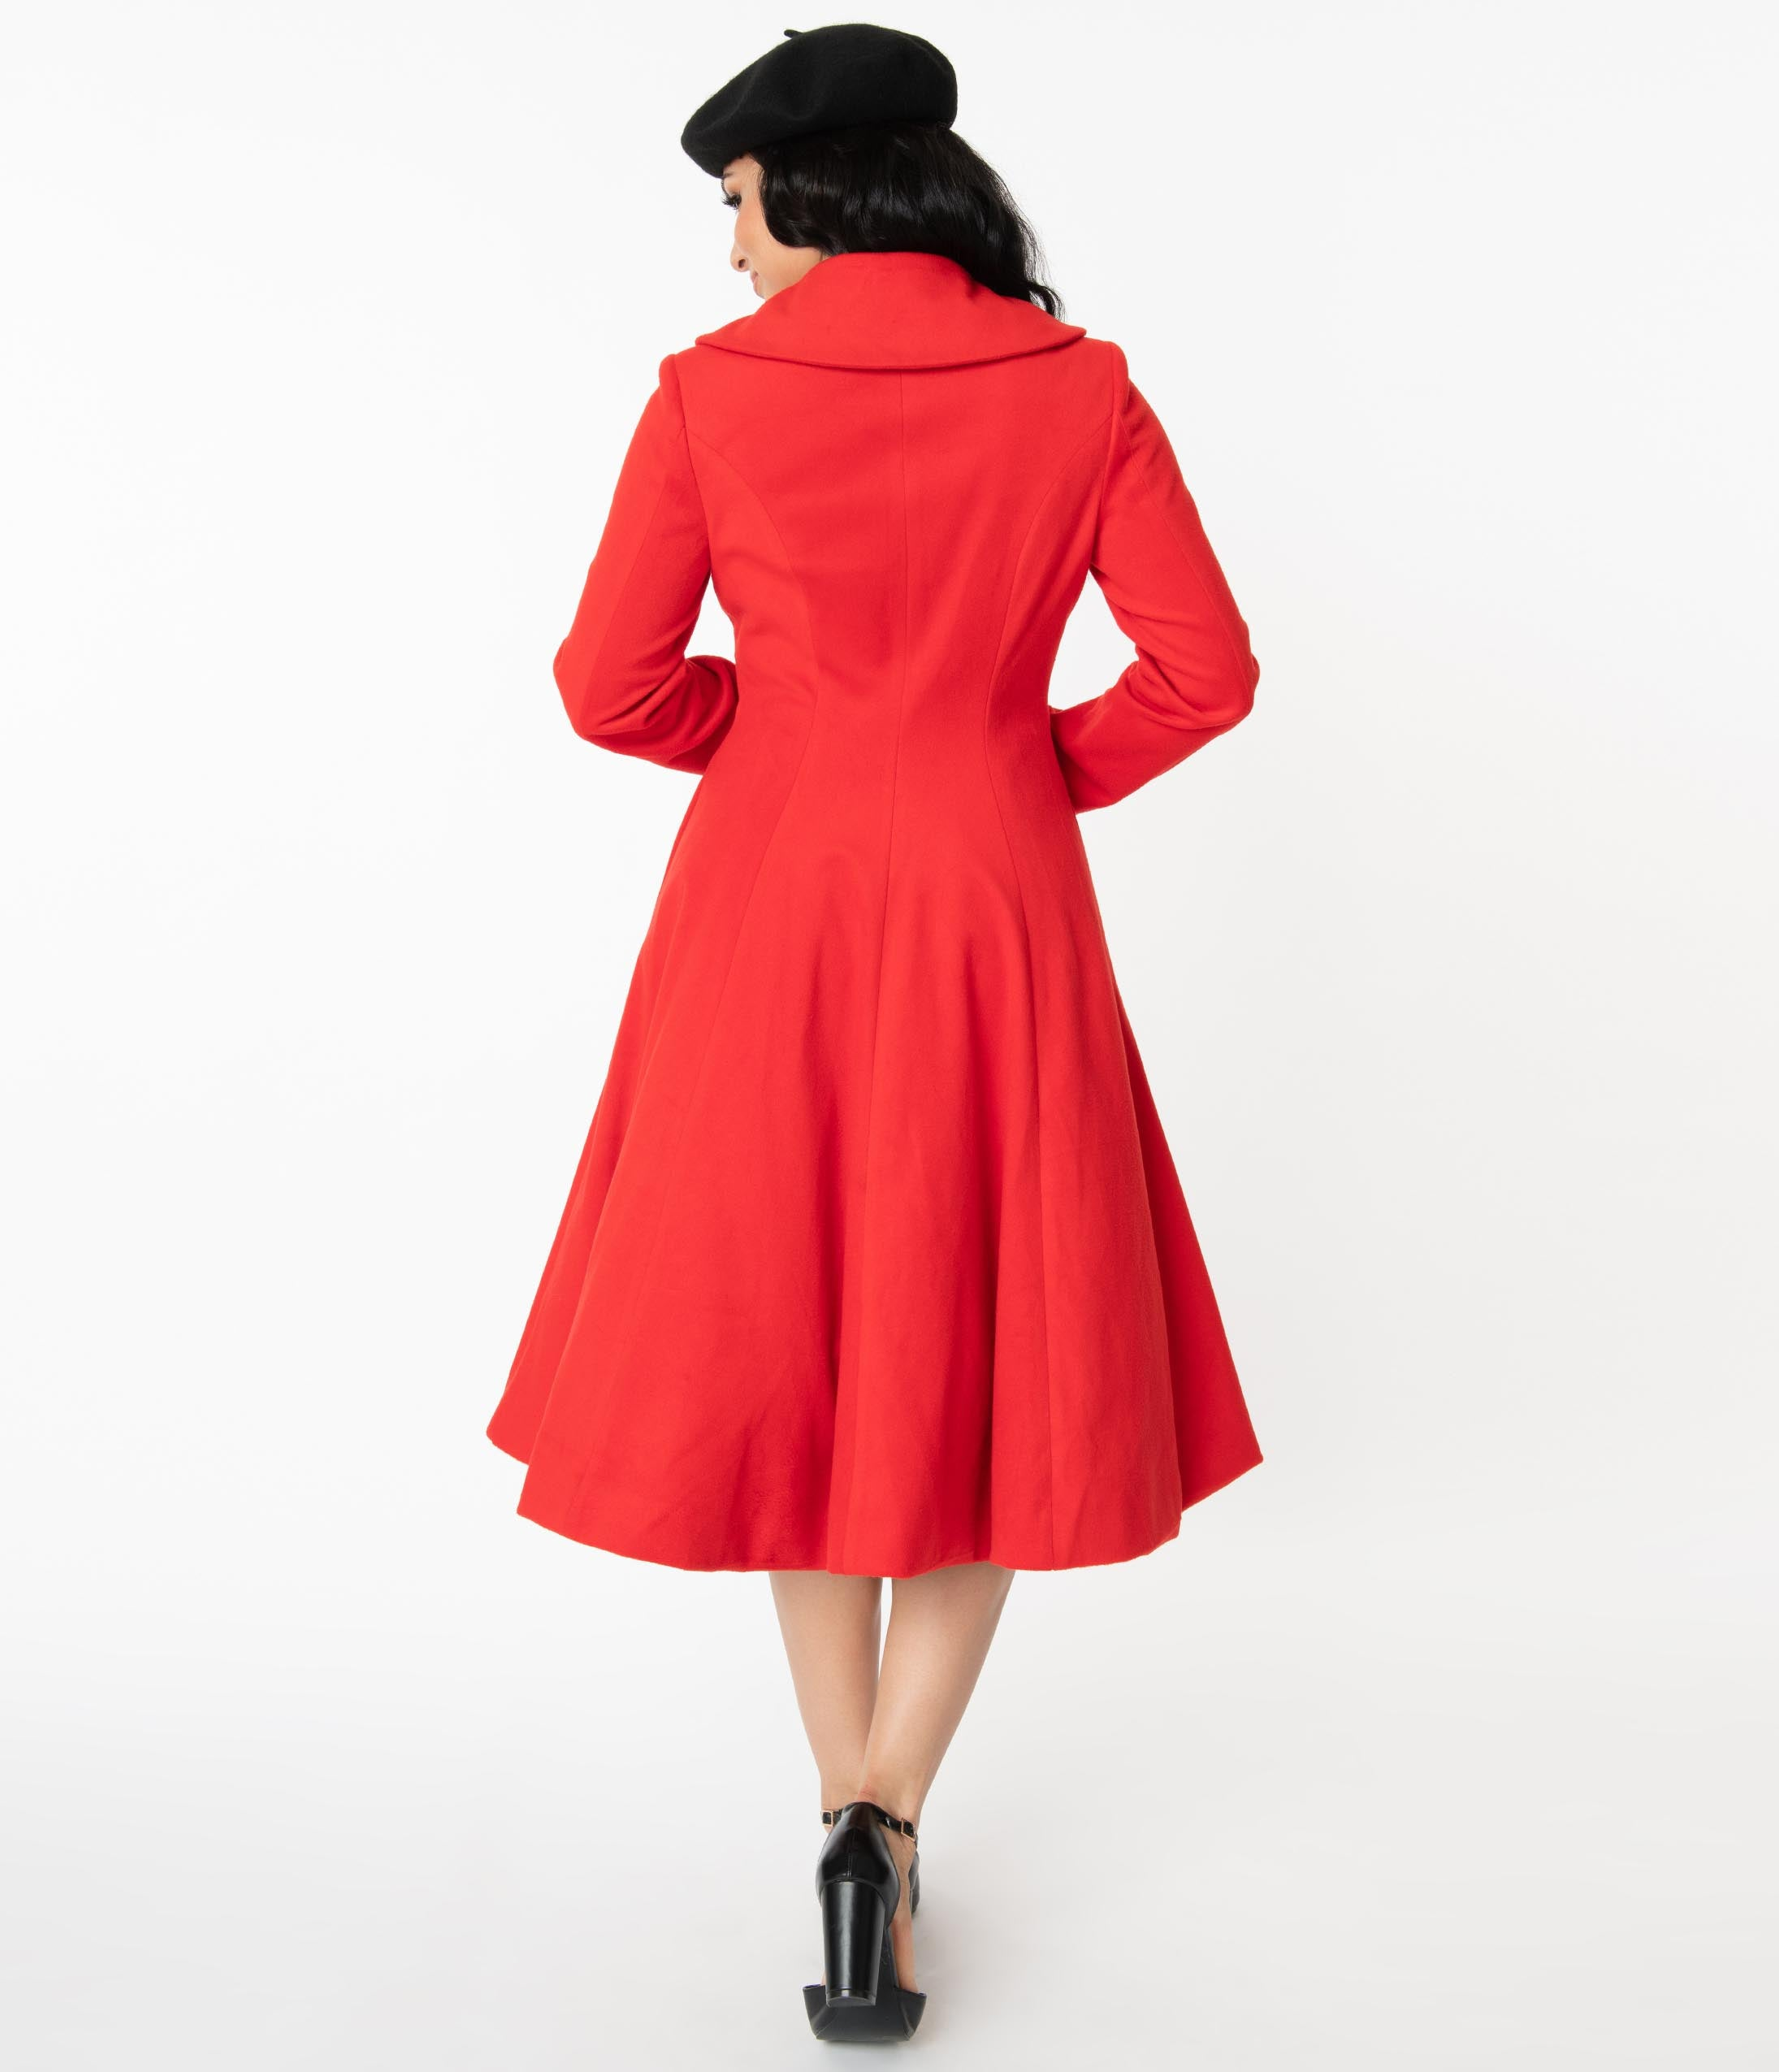 1950s Coats and Jackets History Unique Vintage 1950S Style Red Dorian Swing Coat $148.00 AT vintagedancer.com